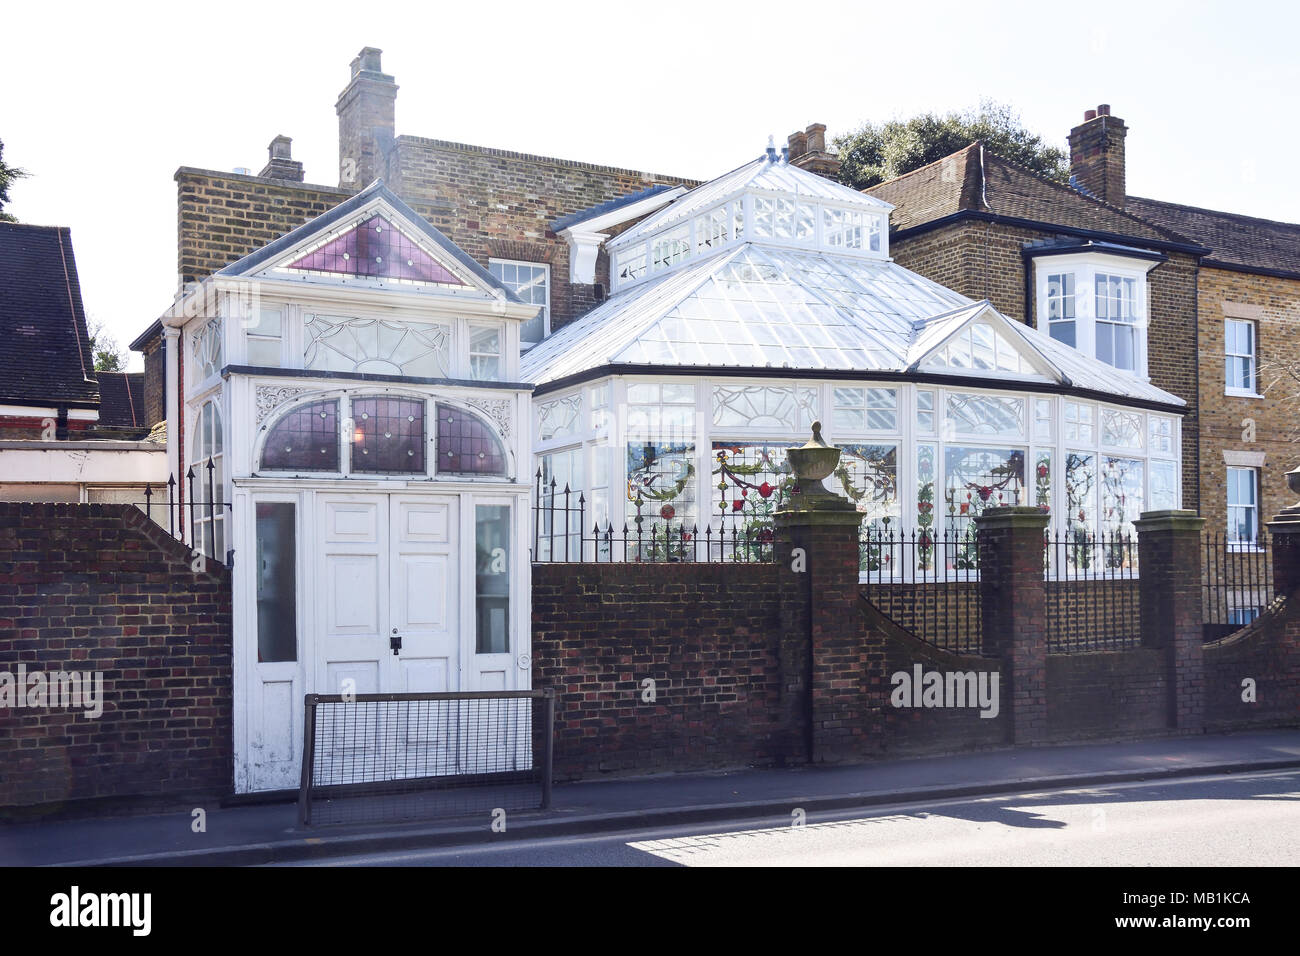 Historic house with glass coservatory on Staines Road, Bedfont, London Borough of Hounslow, Greater London, England, United Kingdom - Stock Image